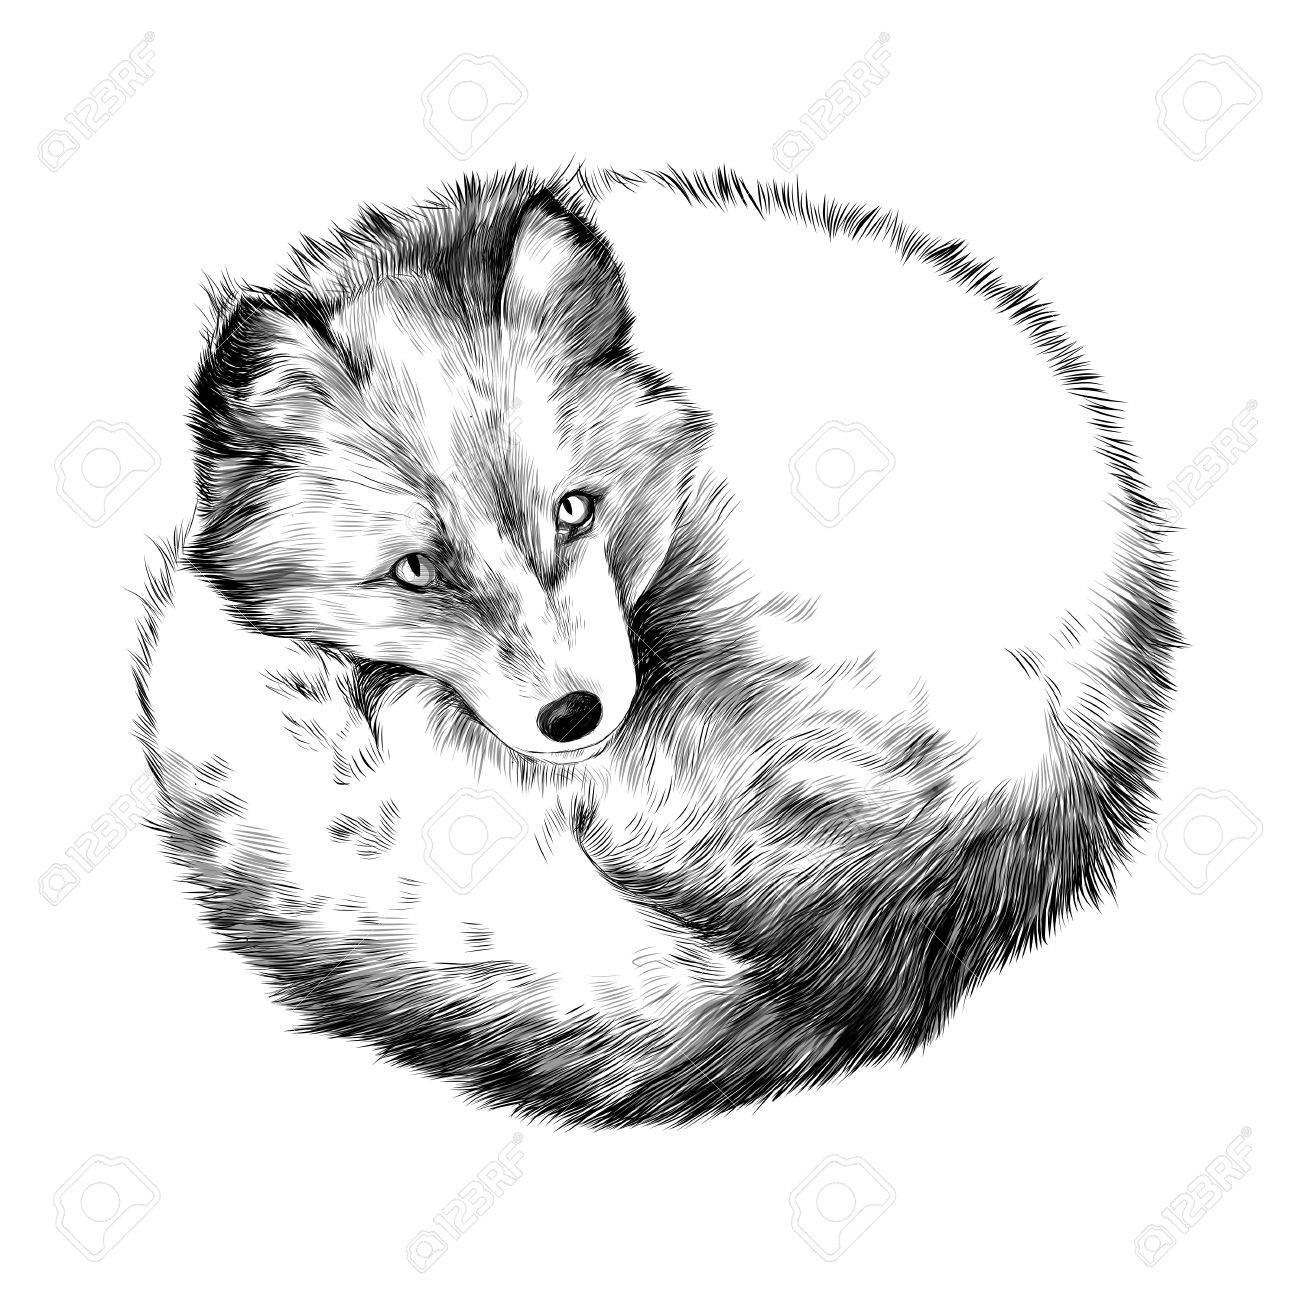 Arctic fox lying on snow sketch vector graphics black and white drawing stock vector 75435291